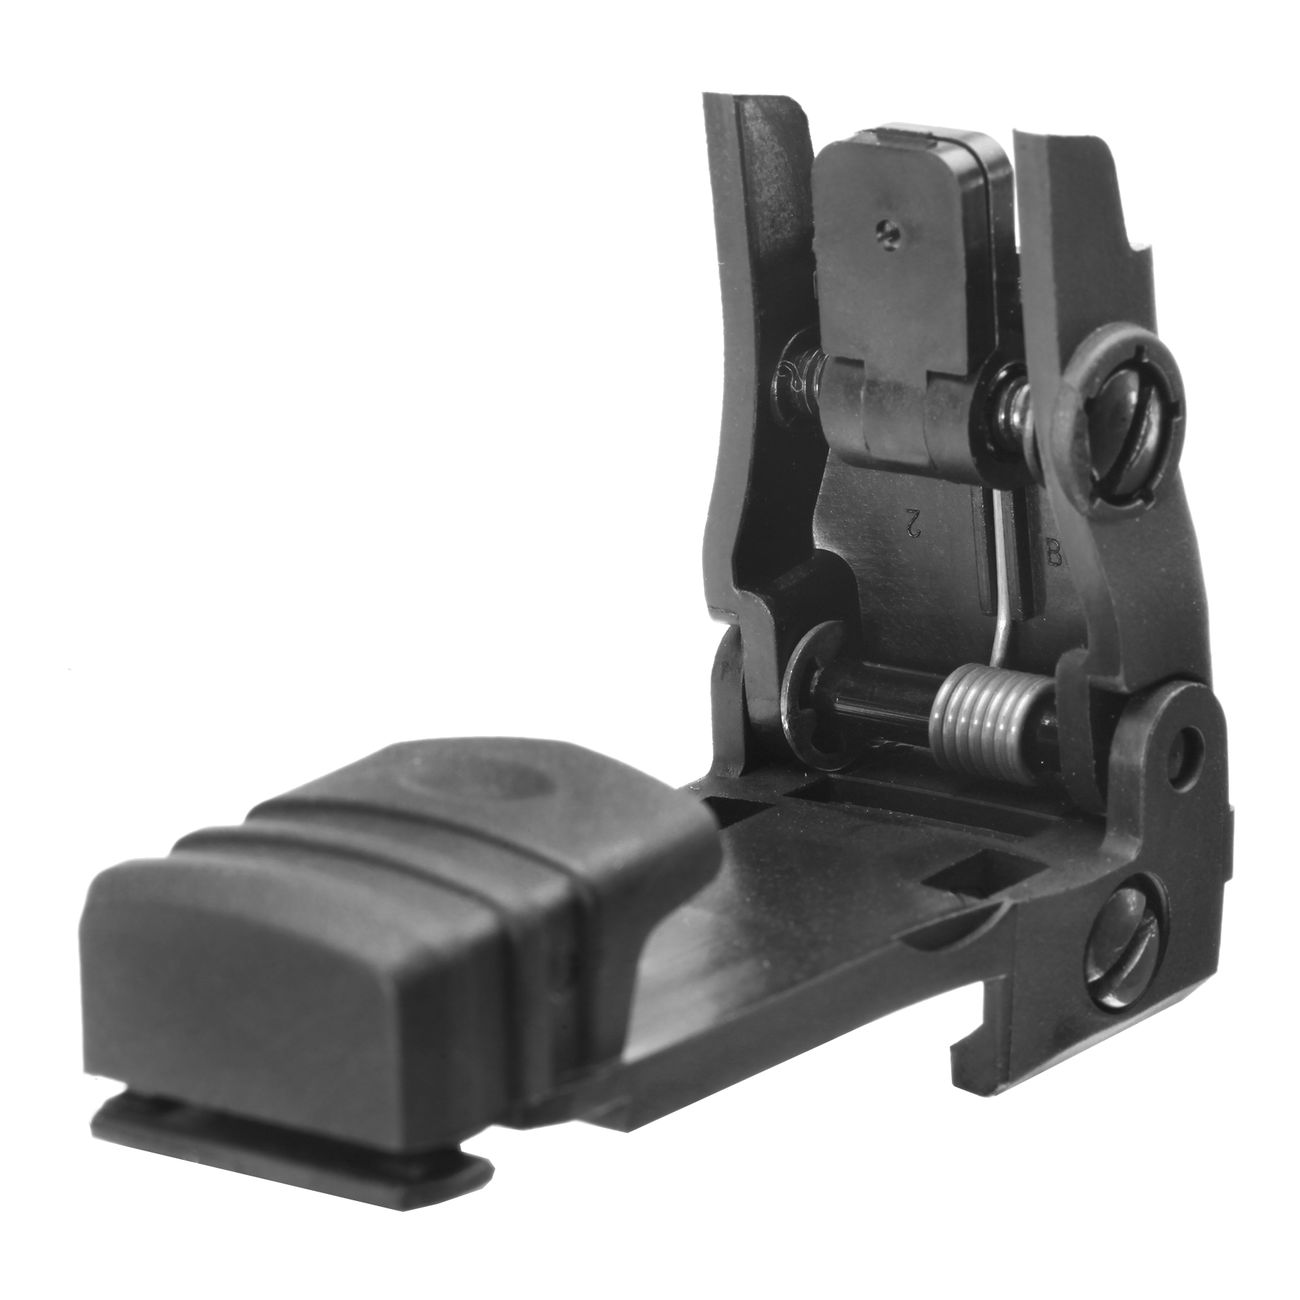 MFT BUPSWR Polymer Flip-Up Rear Sight f. 21mm Schienen schwarz 1